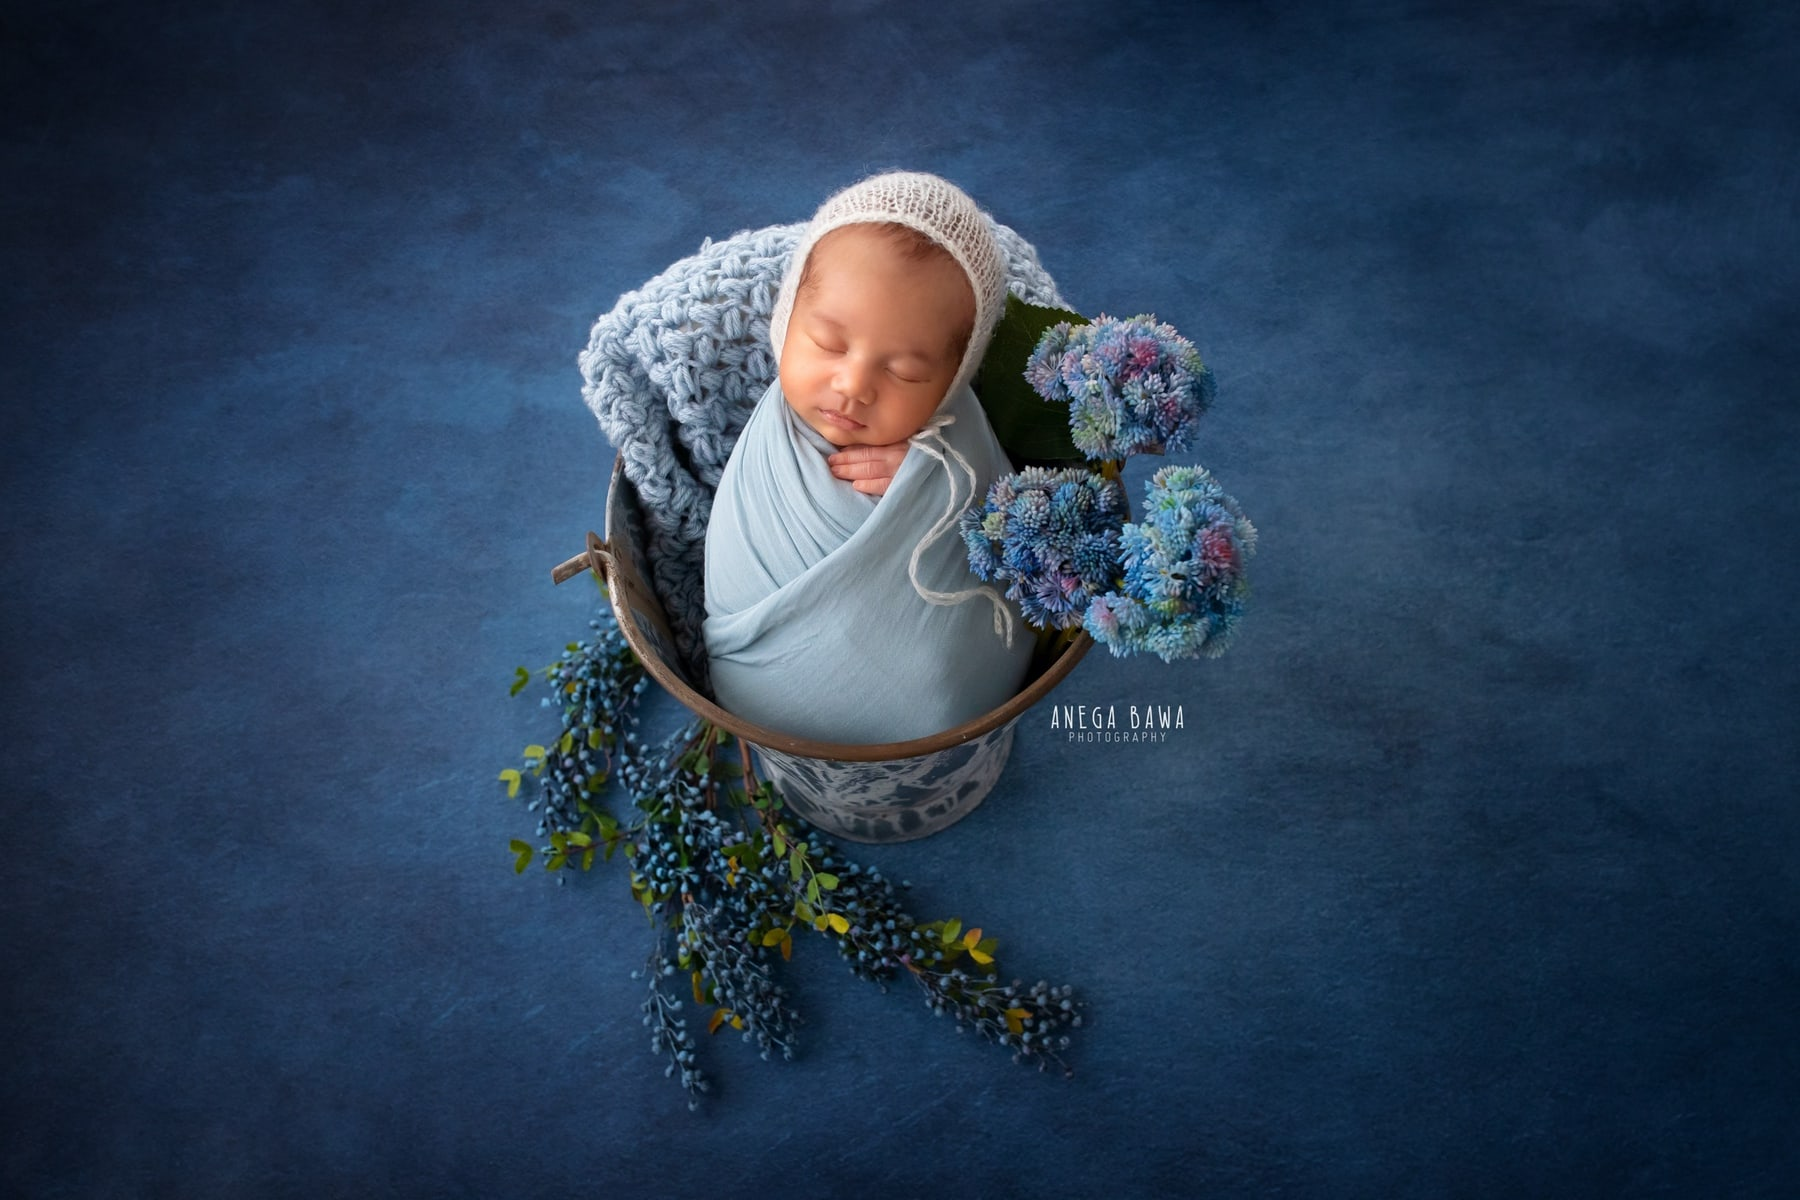 blue floral newborn photography delhi 11 days baby boy photoshoot gurgaon anega bawa